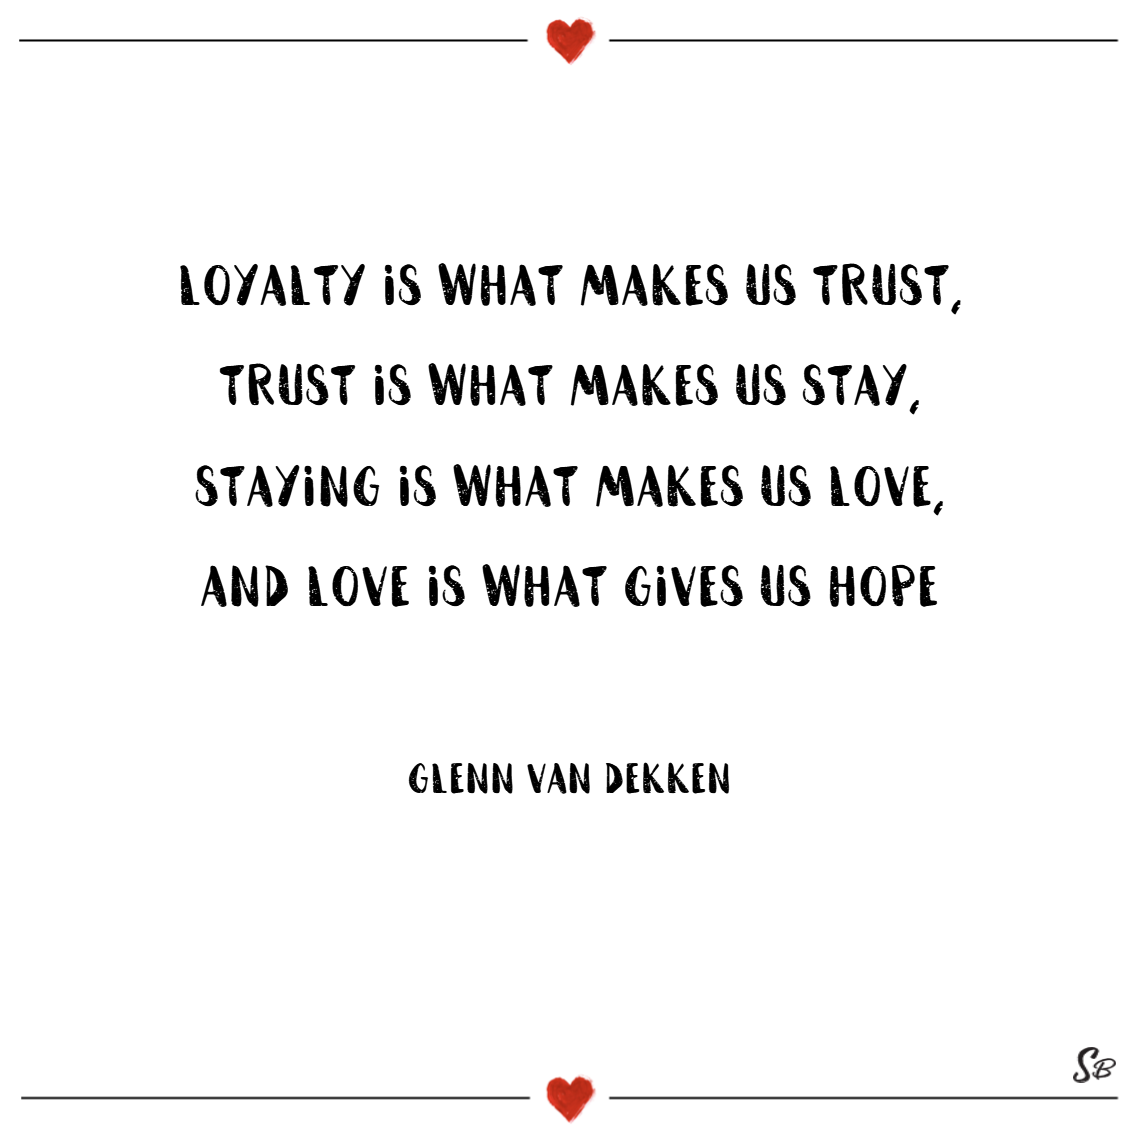 Quotes On Love And Trust 31 Amazing Loyalty Quotes On Friendship And Love  Spirit Button